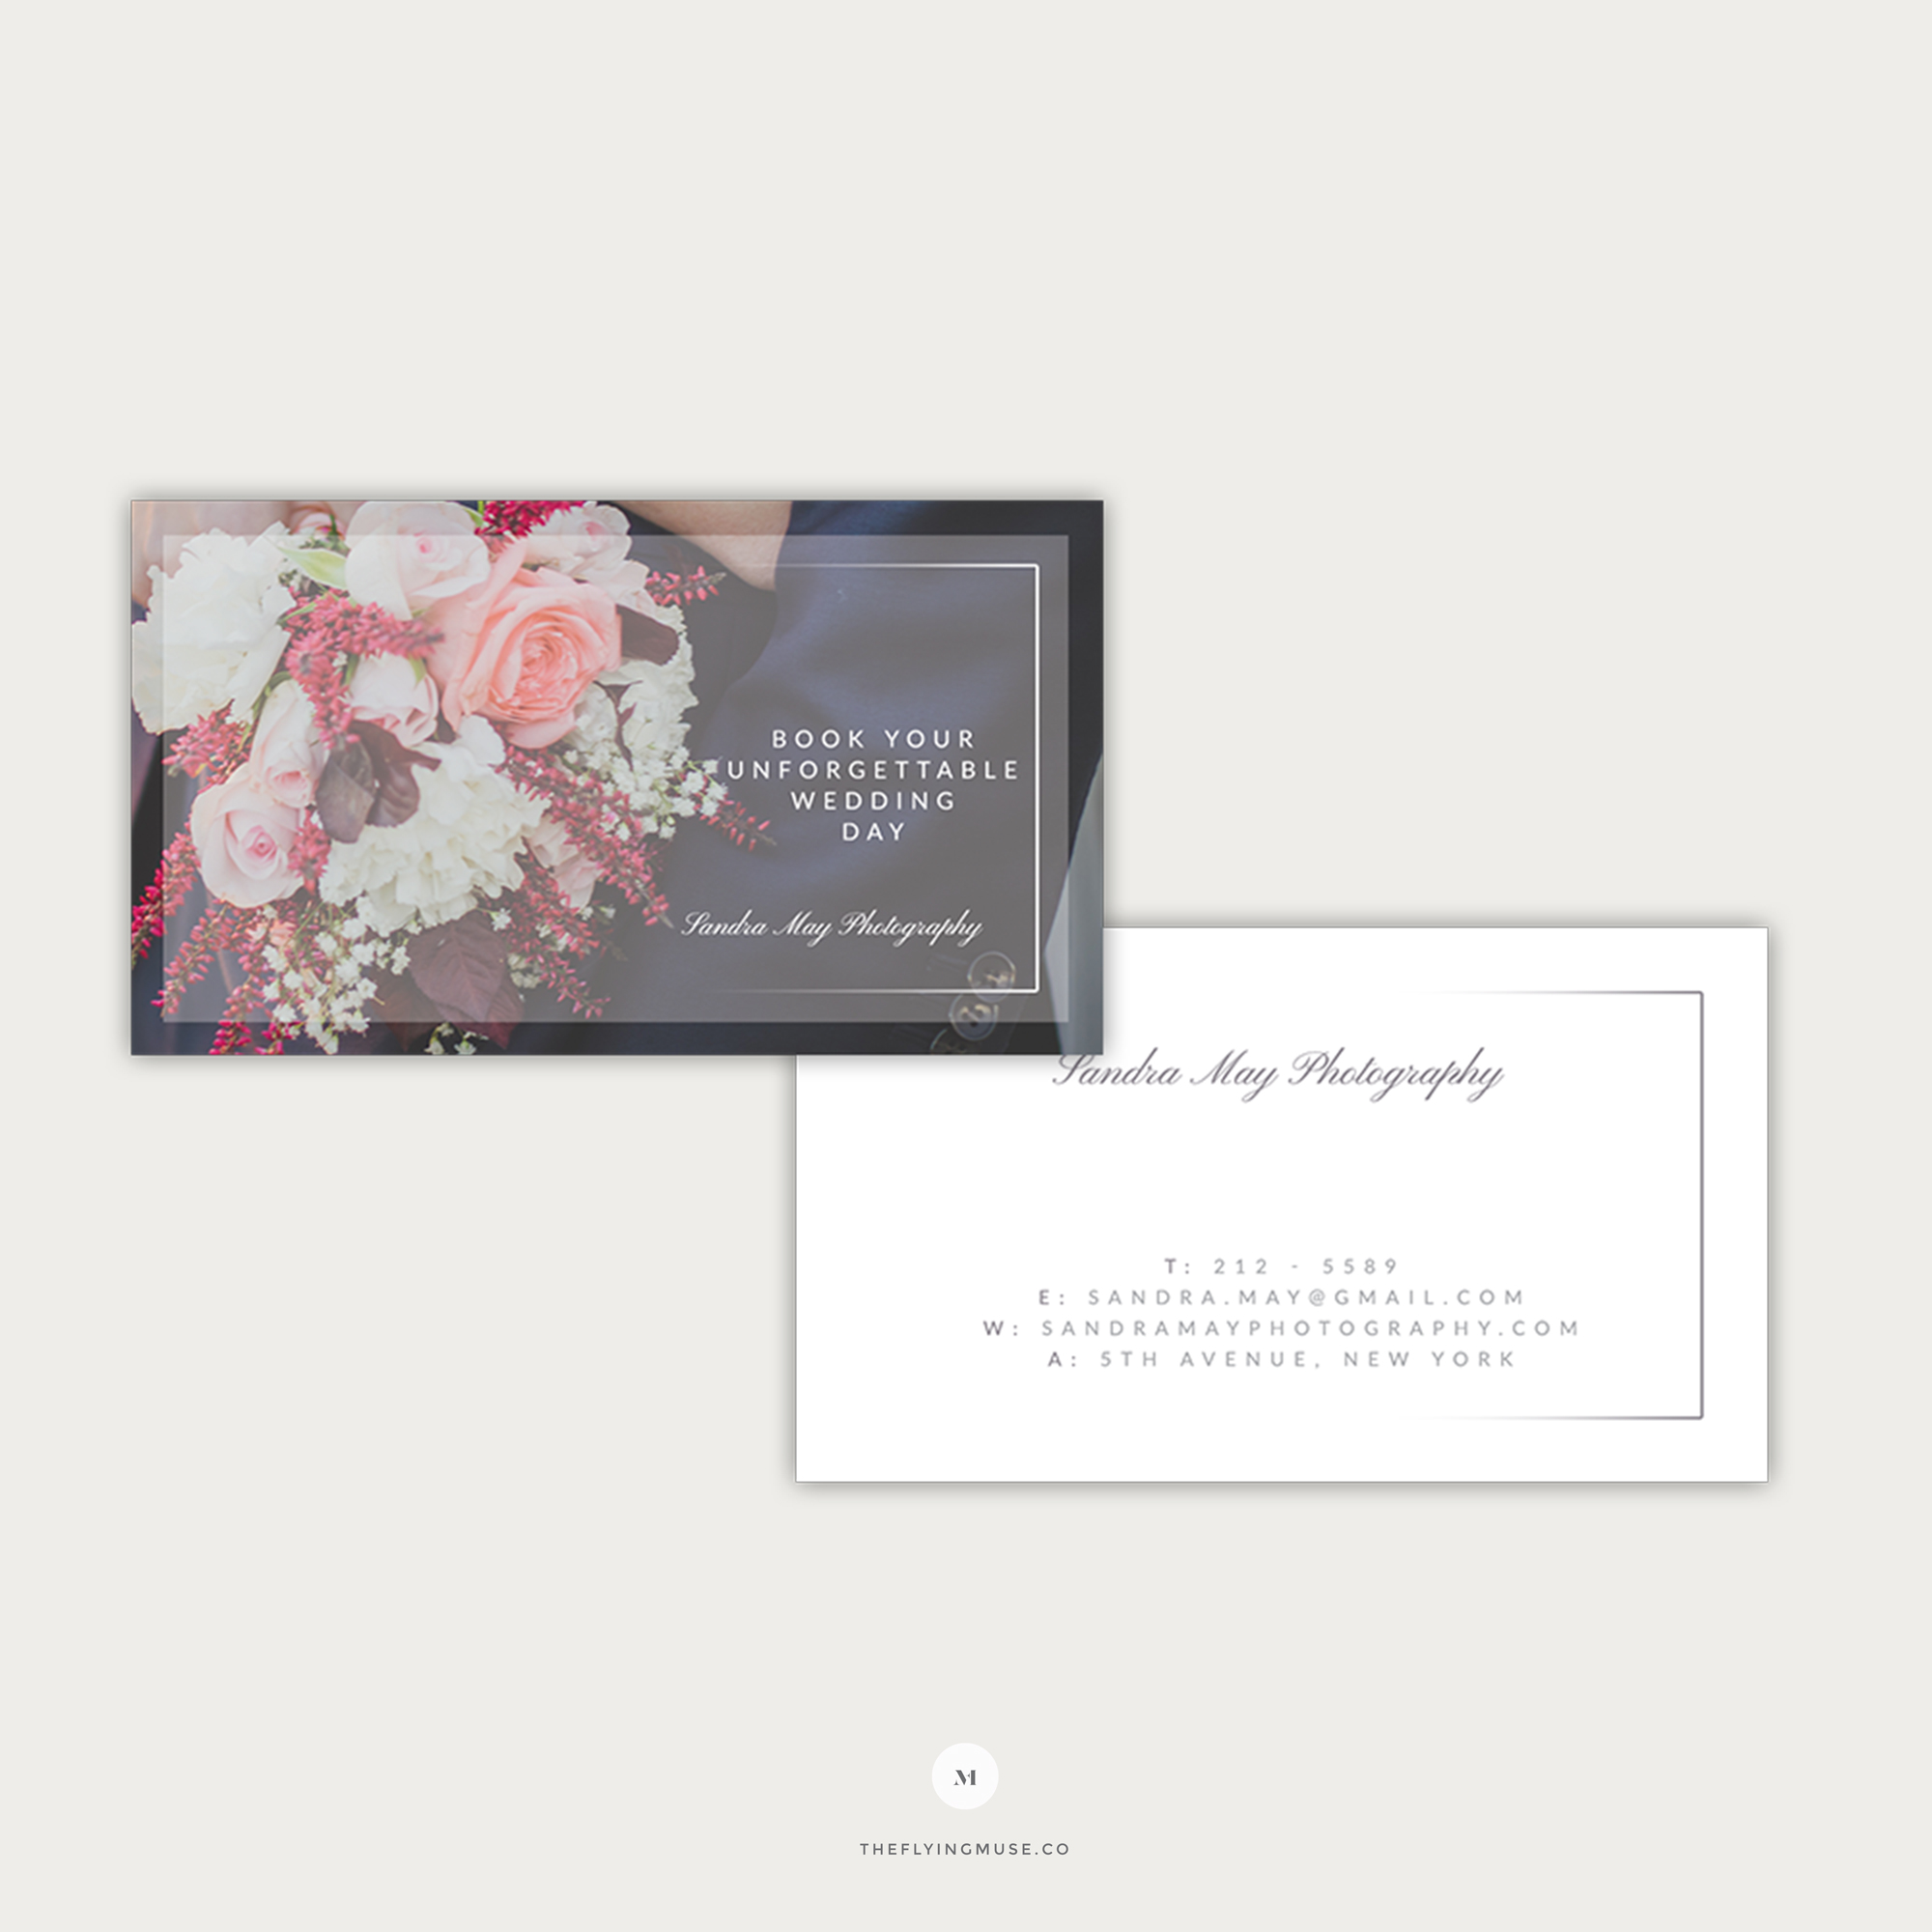 Elegant Wedding Business Cards for Photographers  the